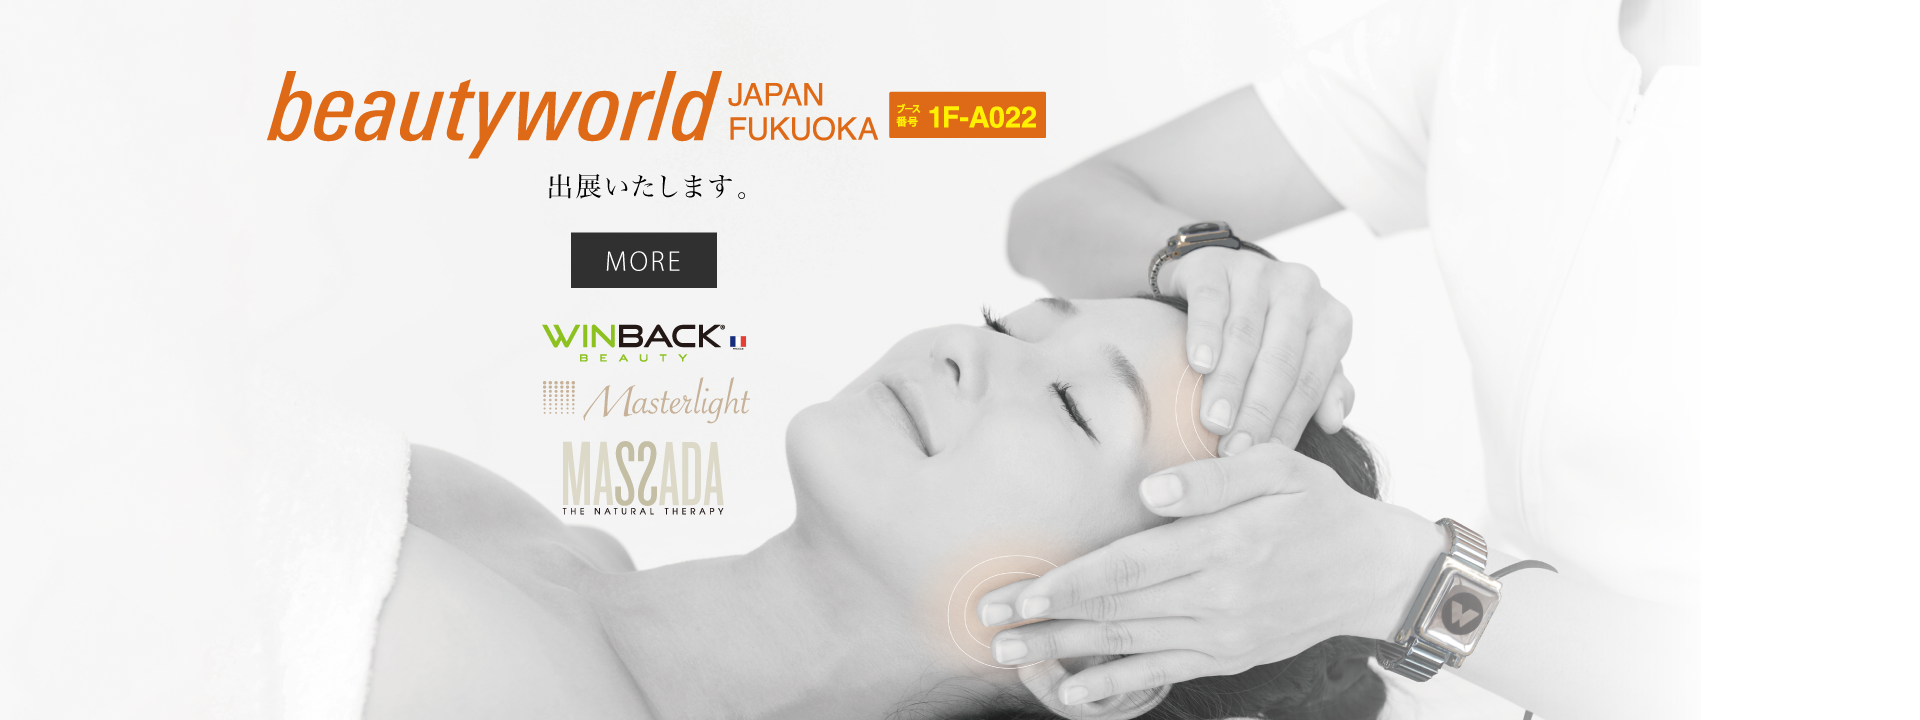 beauty world JAPAN福岡